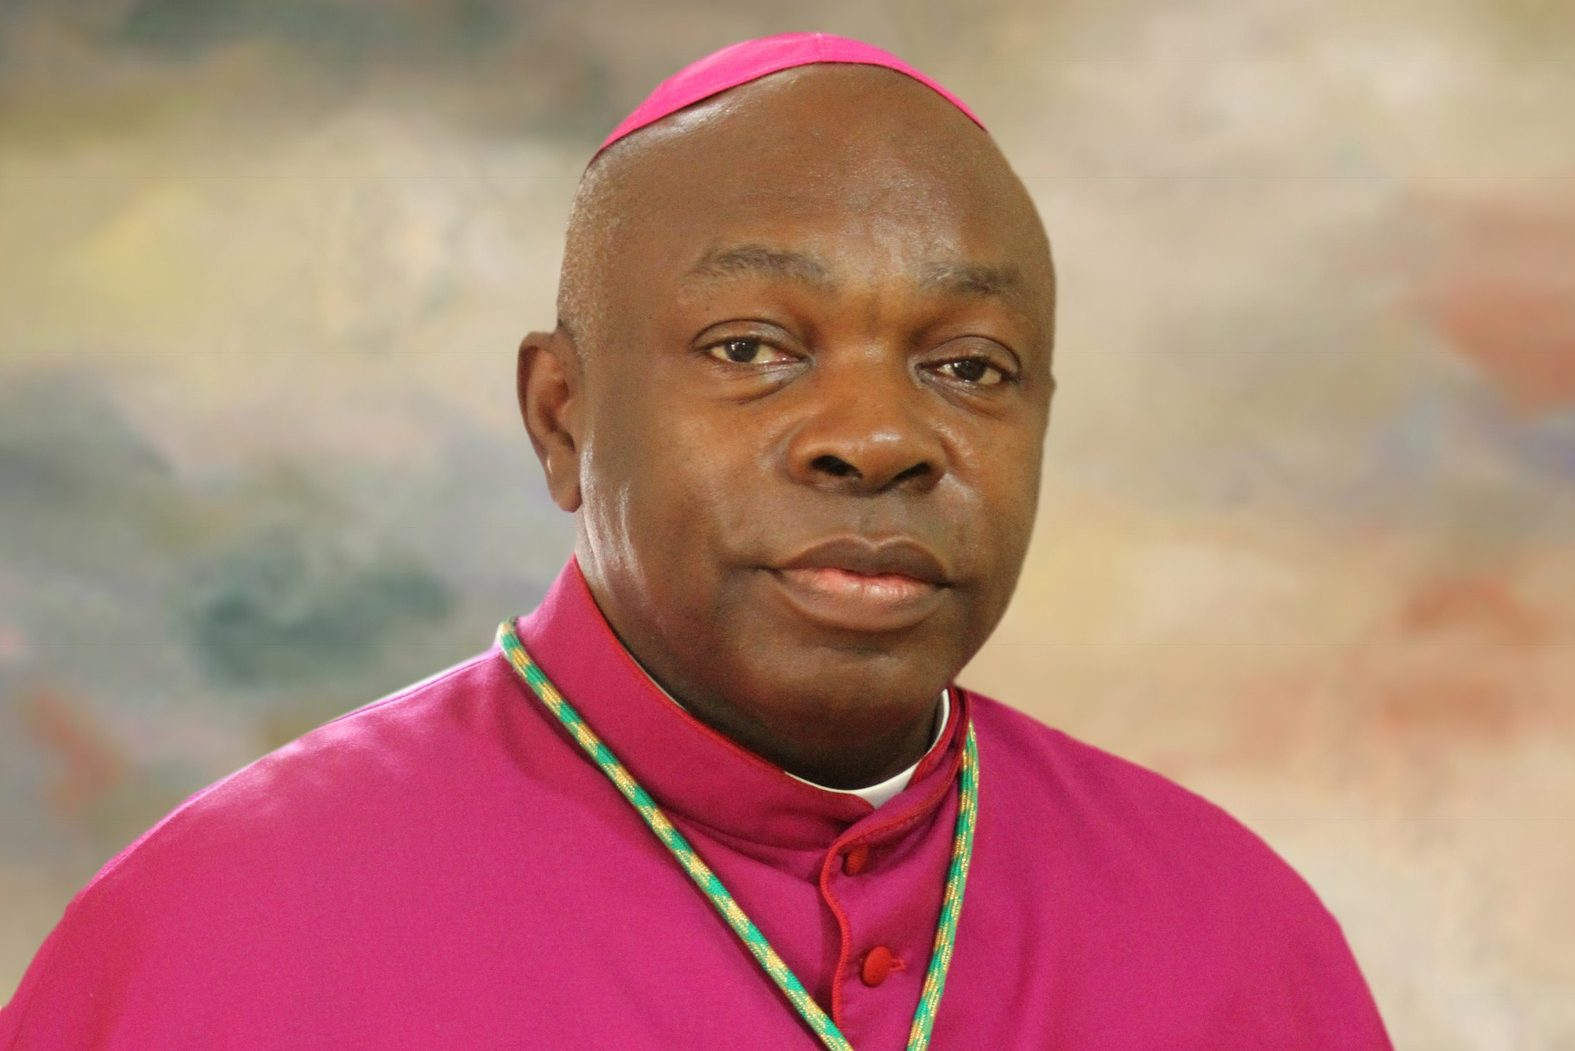 With image of Archbishop Obiora Akubeze of Benin (© Aid to the Church in Need).